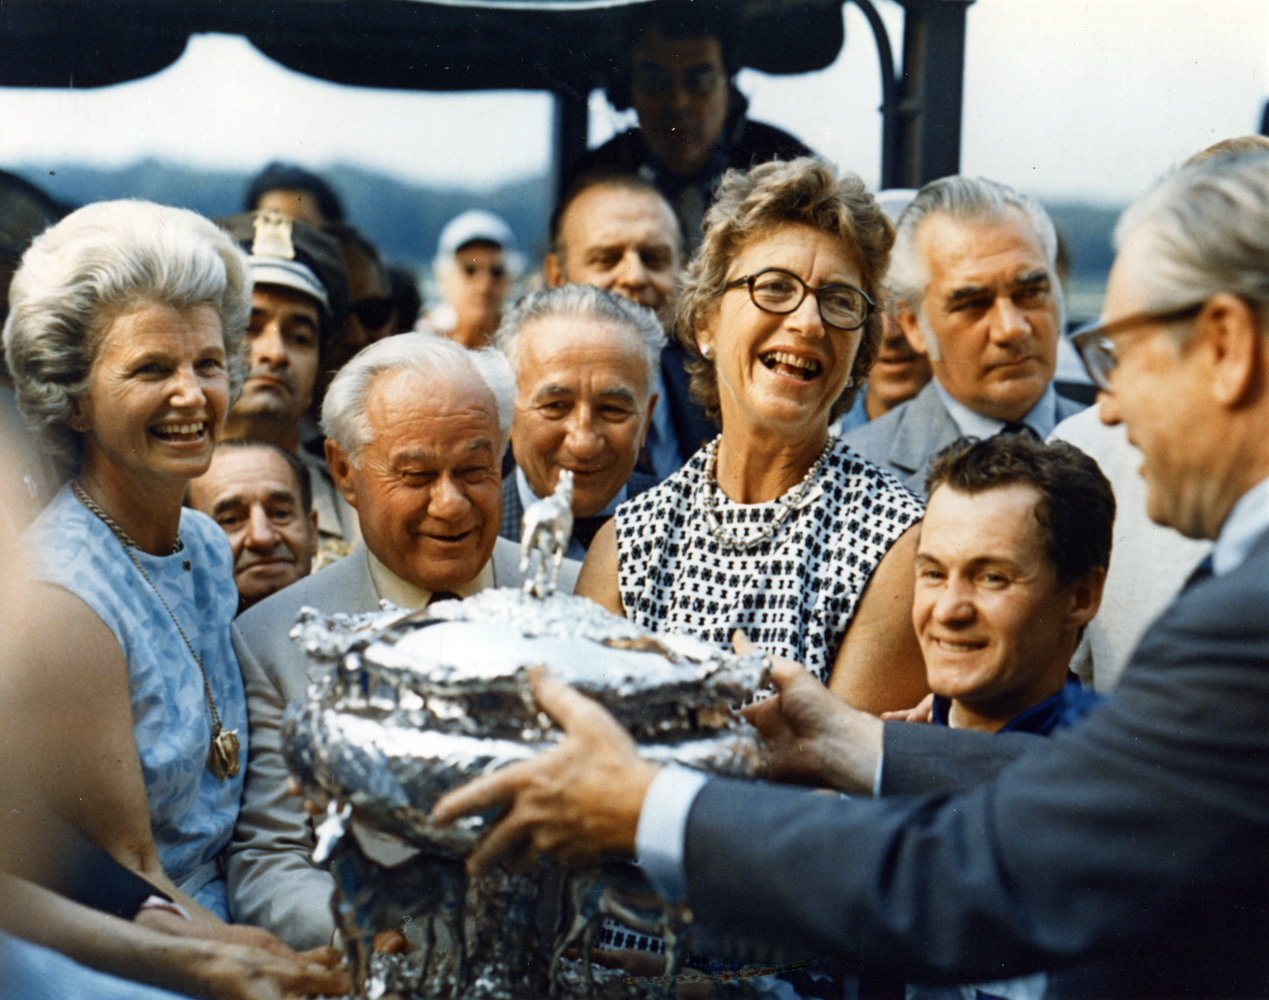 The winning connections of Secretariat receiving the August Belmont Memorial Trophy from New York Governor Nelson Rockefeller after winning the 1973 Belmont Stakes and Triple Crown (Museum Collection)